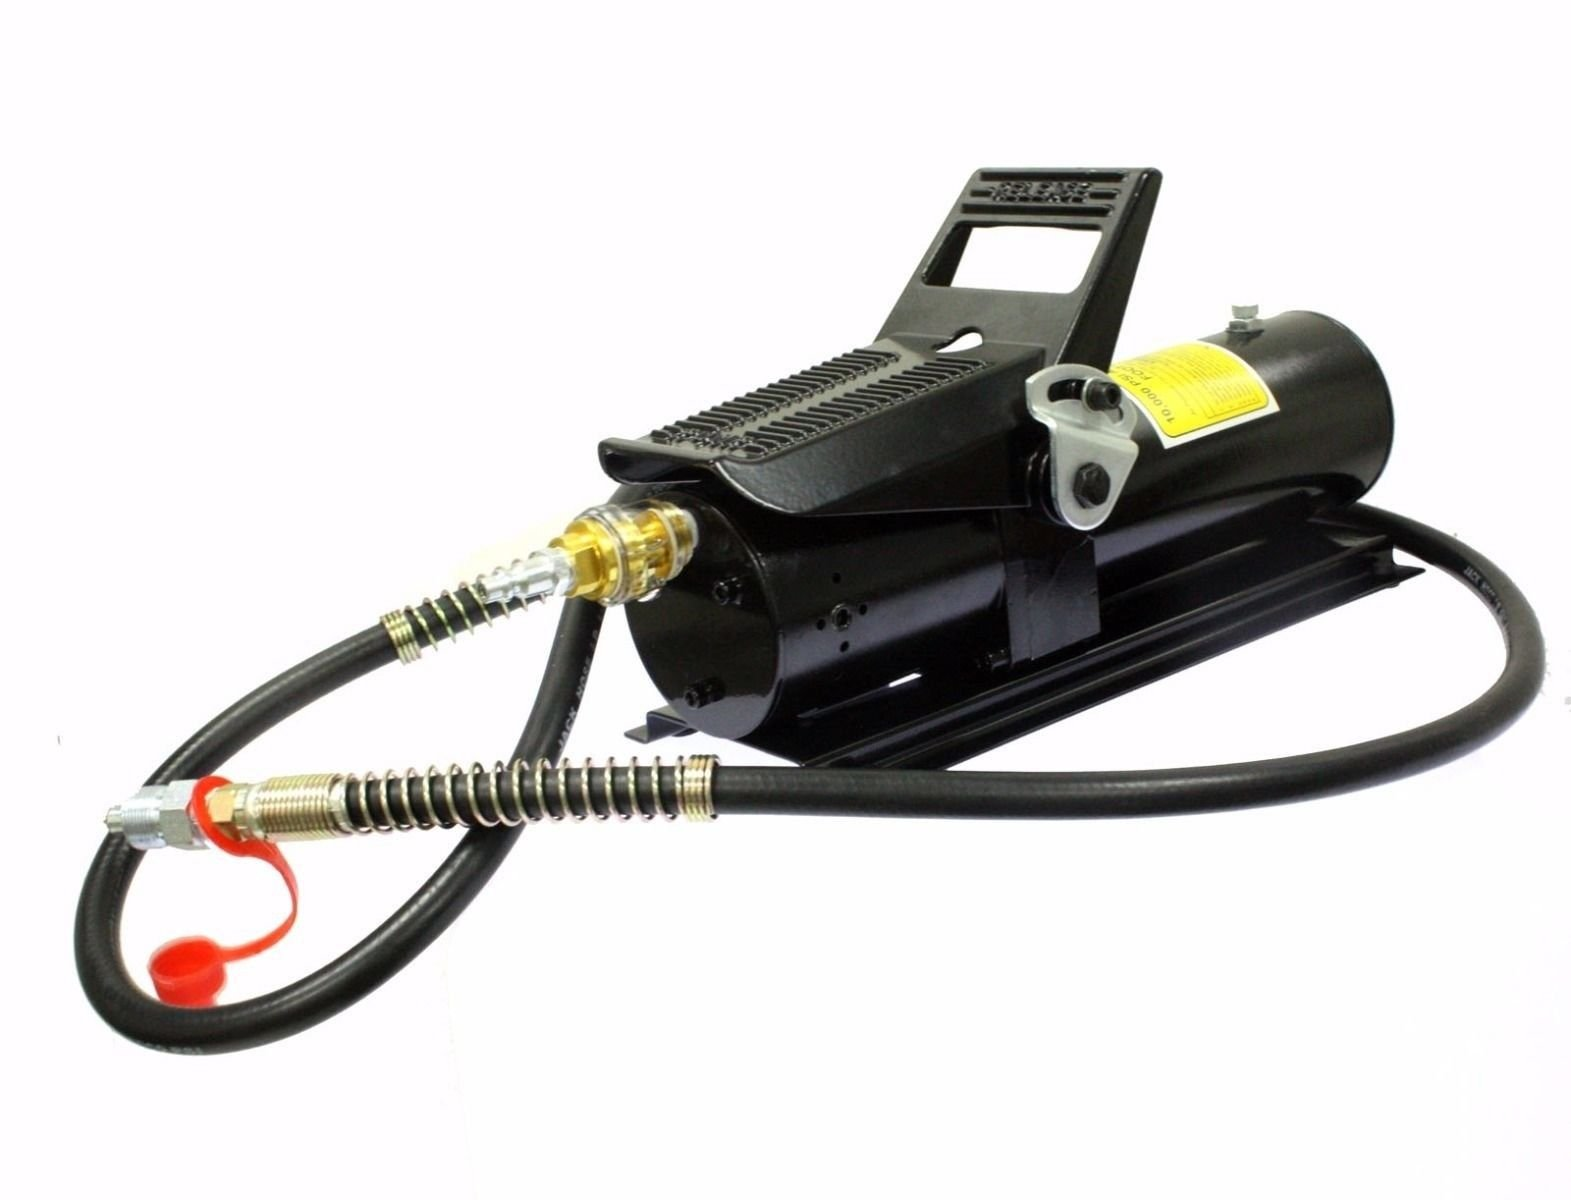 KCHEX>>>10 TON 10,000 PSI Porta Power AIR HYDRAULIC FOOT PUMP CONTROL LIFT W/ 6ft HOSE>Automatic air valve is furnished for less air consumption. Improved muffler design further reduces the noise